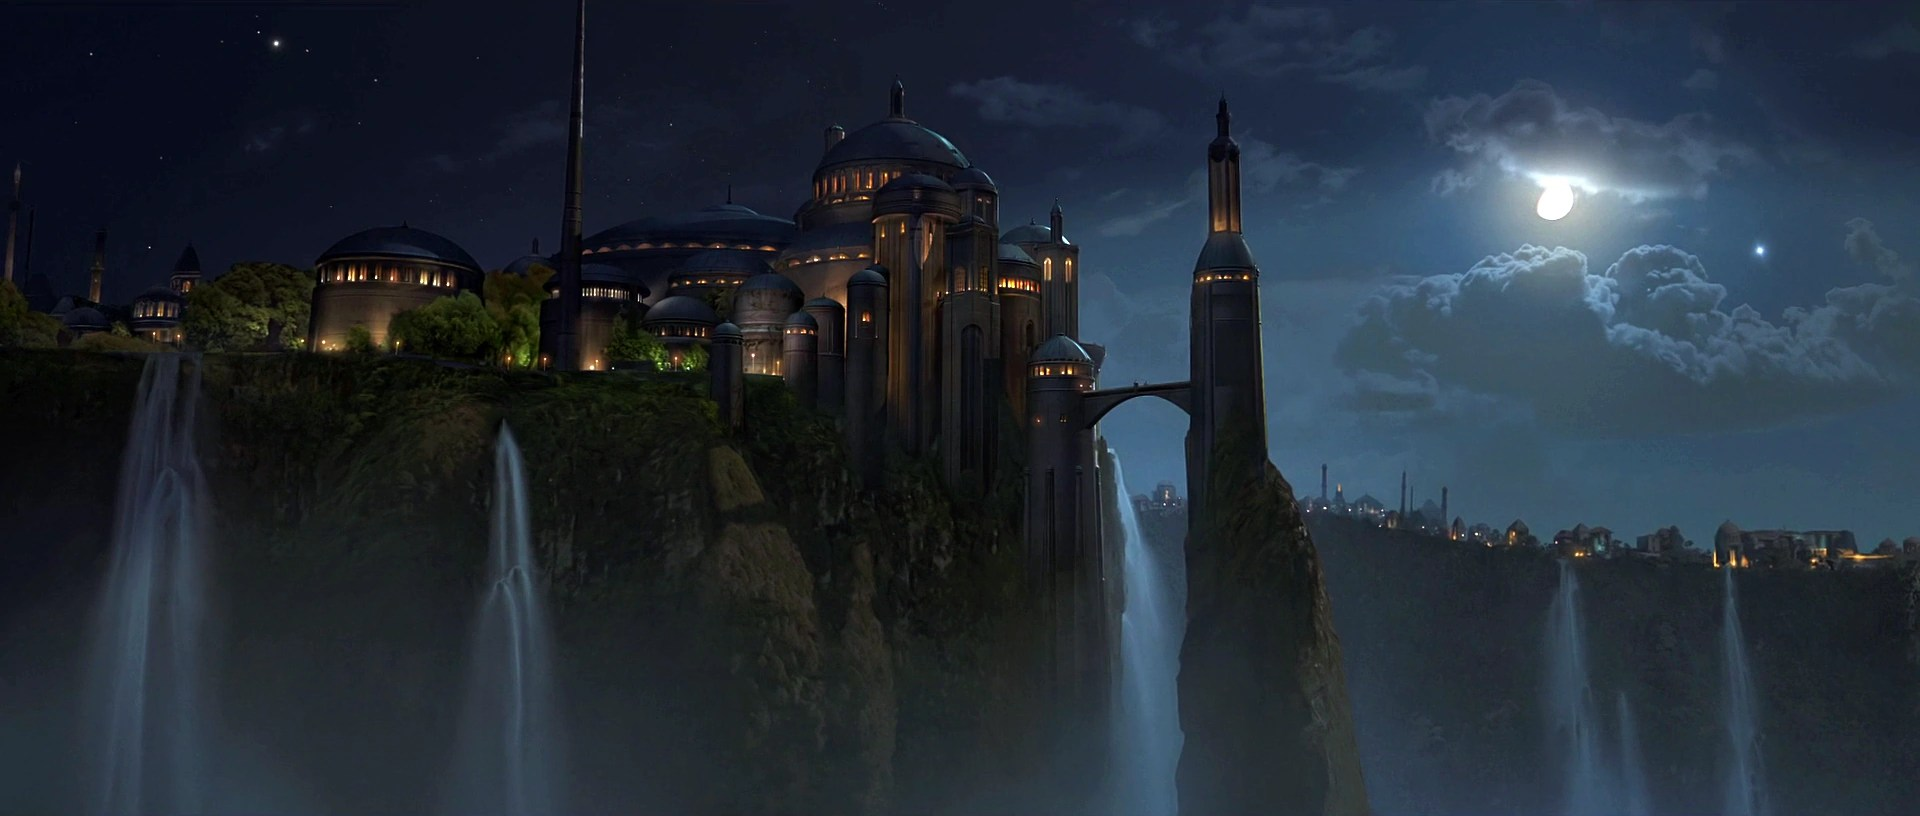 3d Cisco Hd 1920x1080 Wallpaper Theed Royal Palace Wookieepedia The Star Wars Wiki